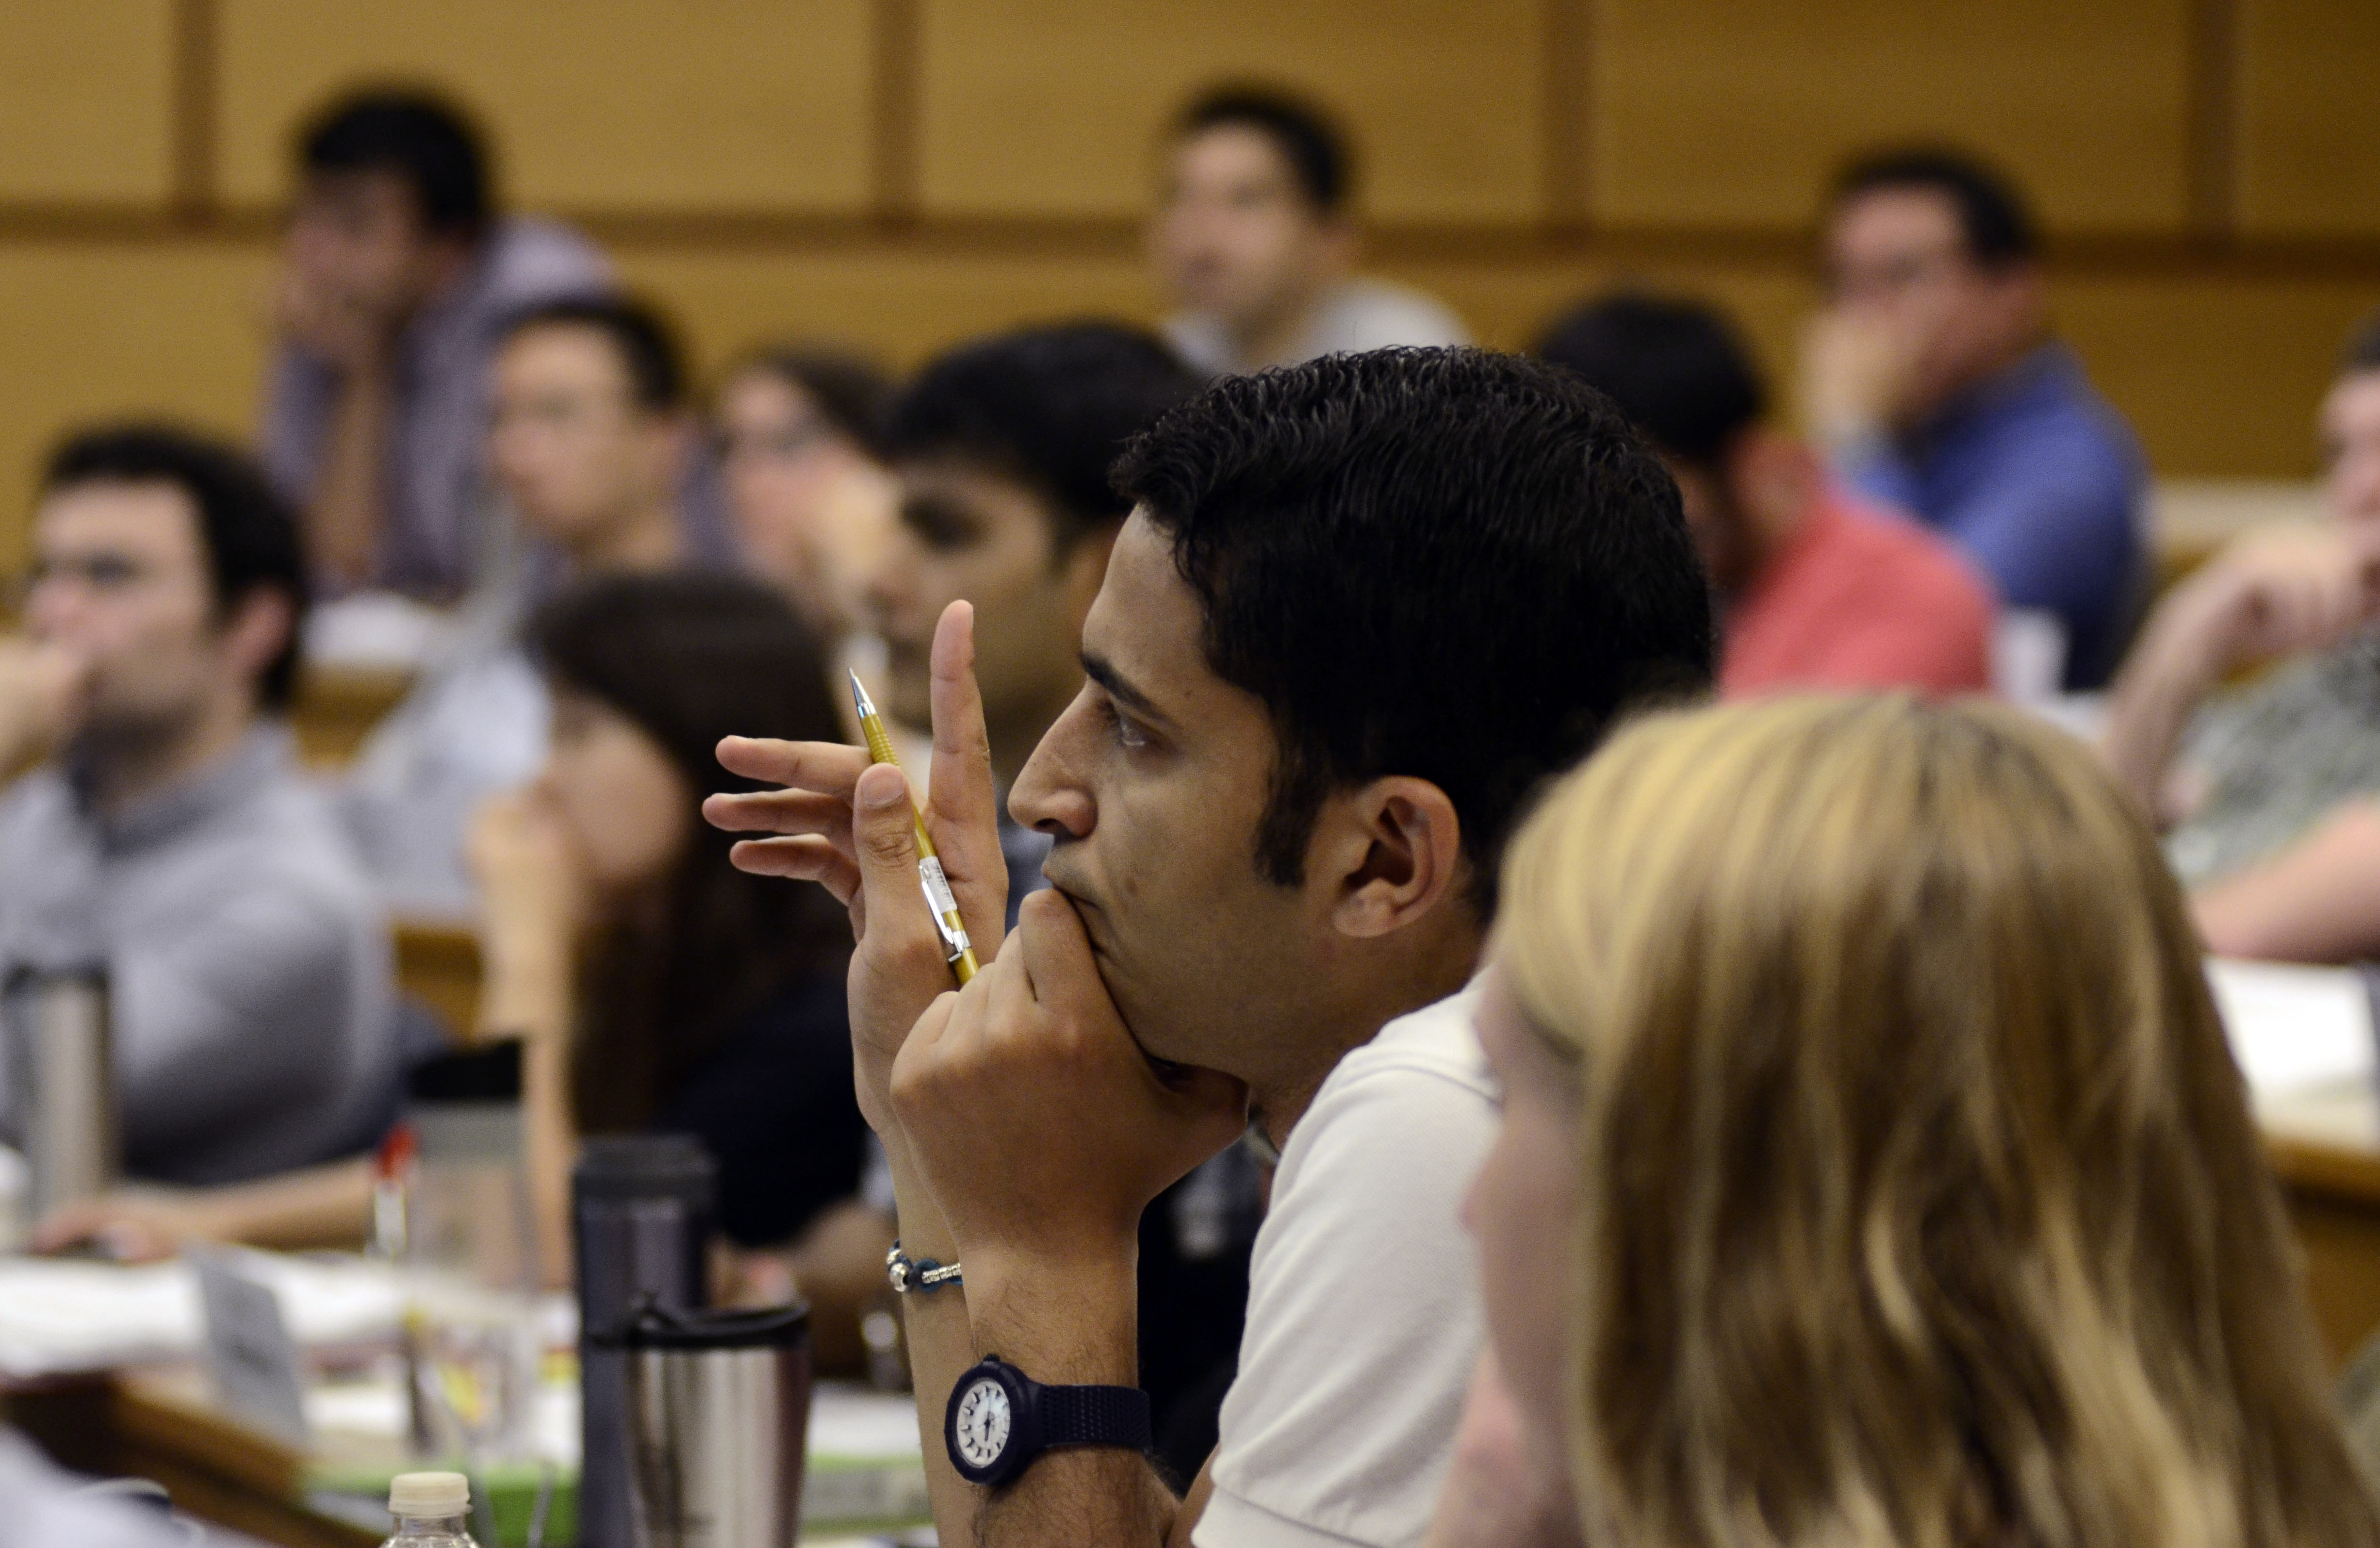 Students participate in a class as part of the one-year MBA program at Cornell University. One-year graduate business programs have become more popular with students in the United States, but sometimes their efforts go unrecognized by employers.